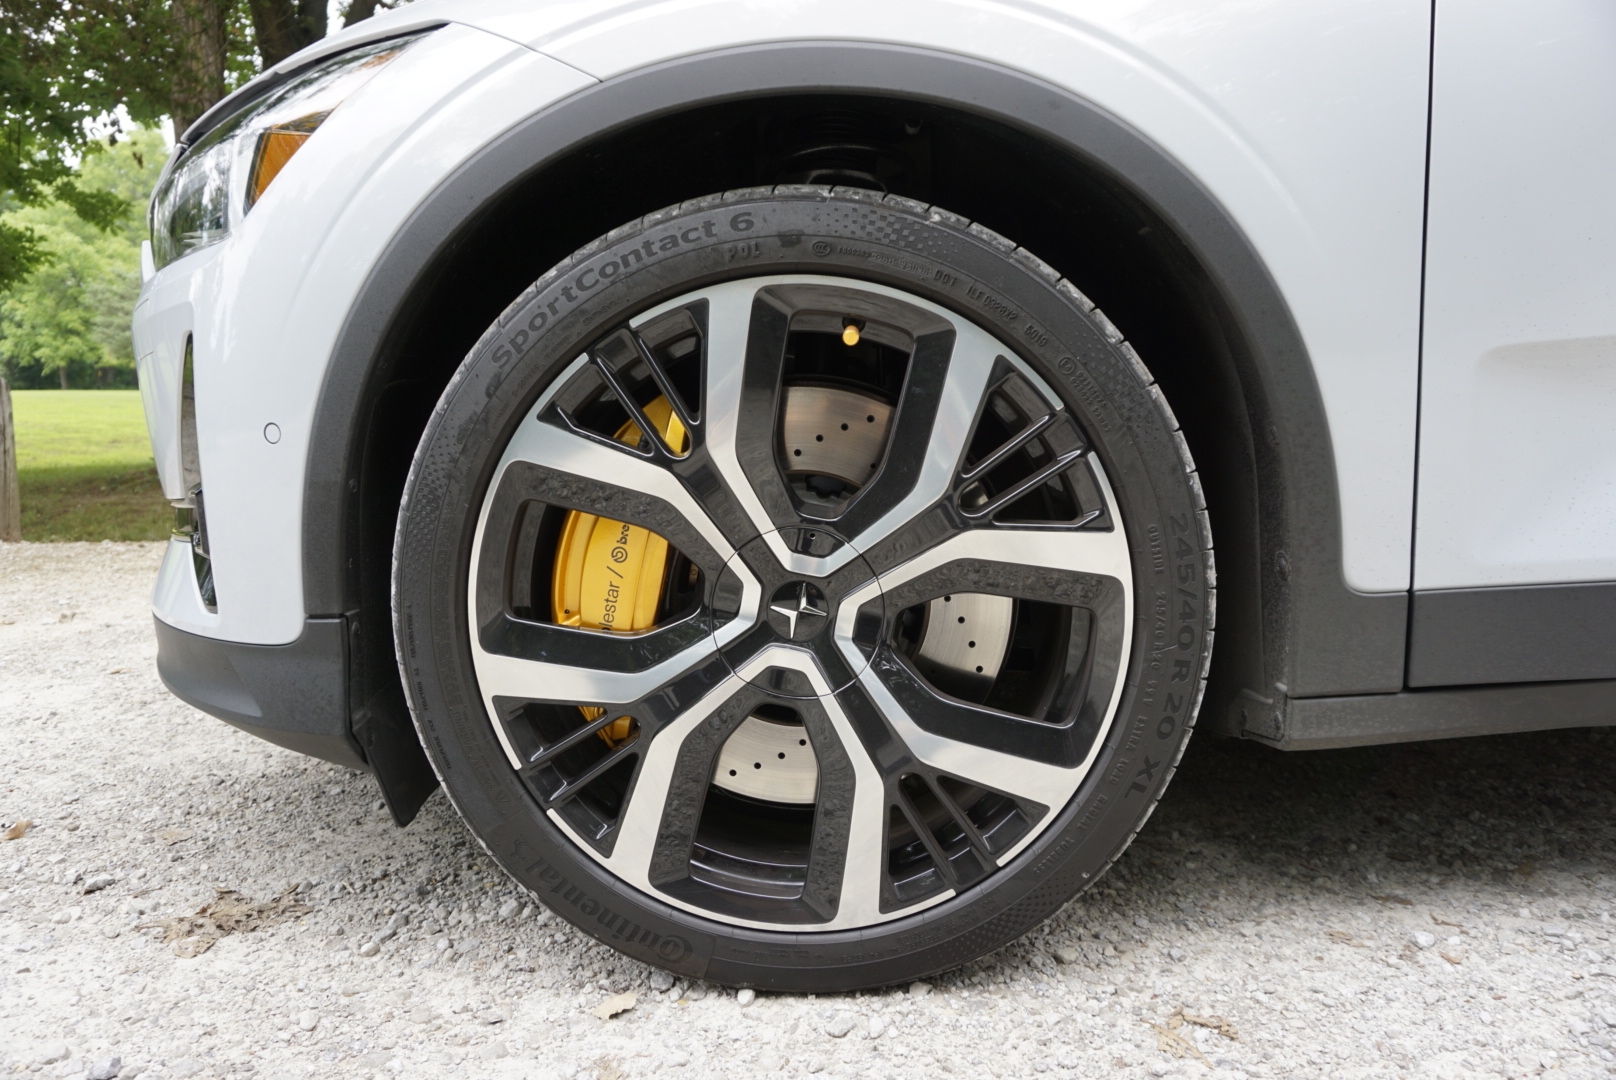 Polestar 2 front wheel brake and tire